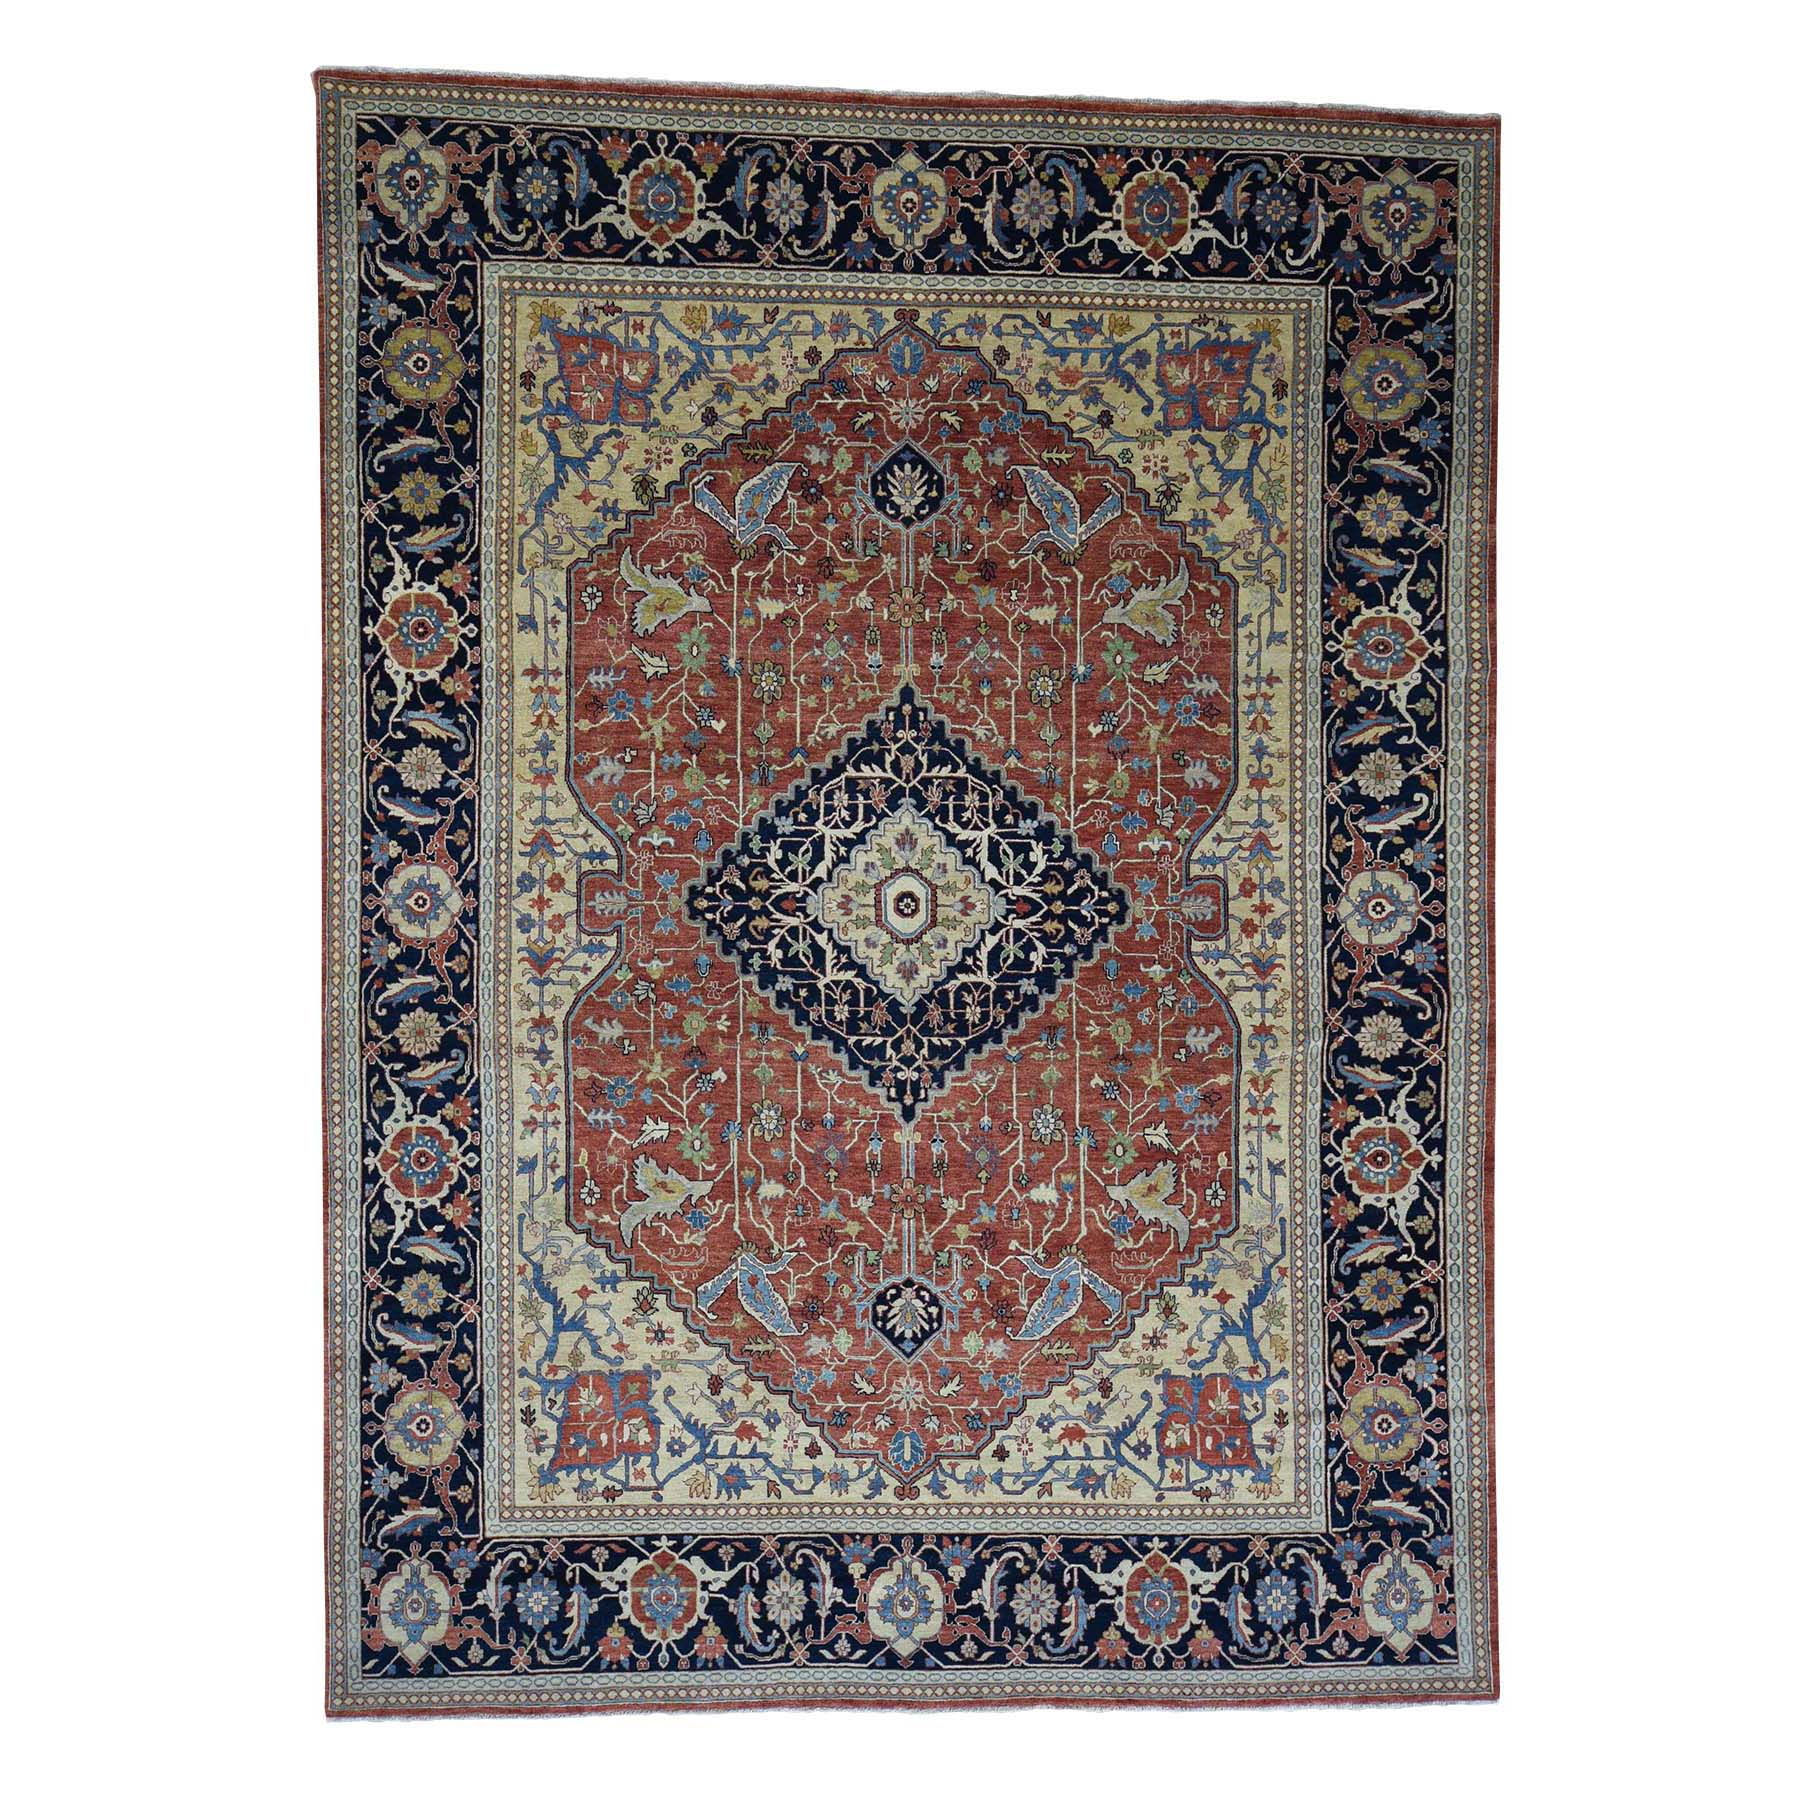 8'10 X 12' Antiqued Heriz Re-Creation Pure Wool Hand Knotted Oriental Rug moad0dde